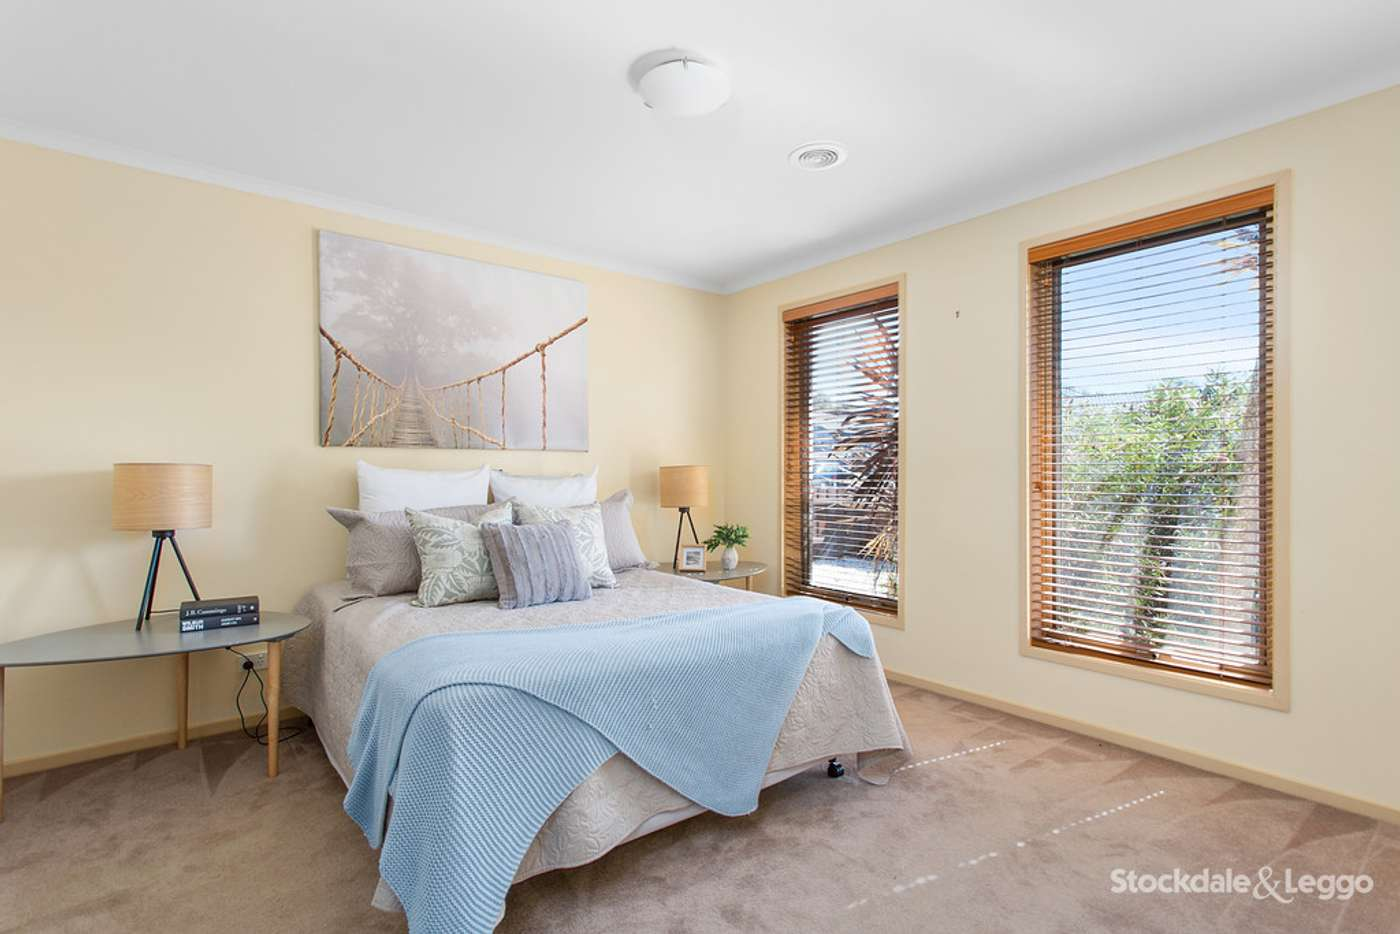 Seventh view of Homely house listing, 38 Elisa Place, Hastings VIC 3915